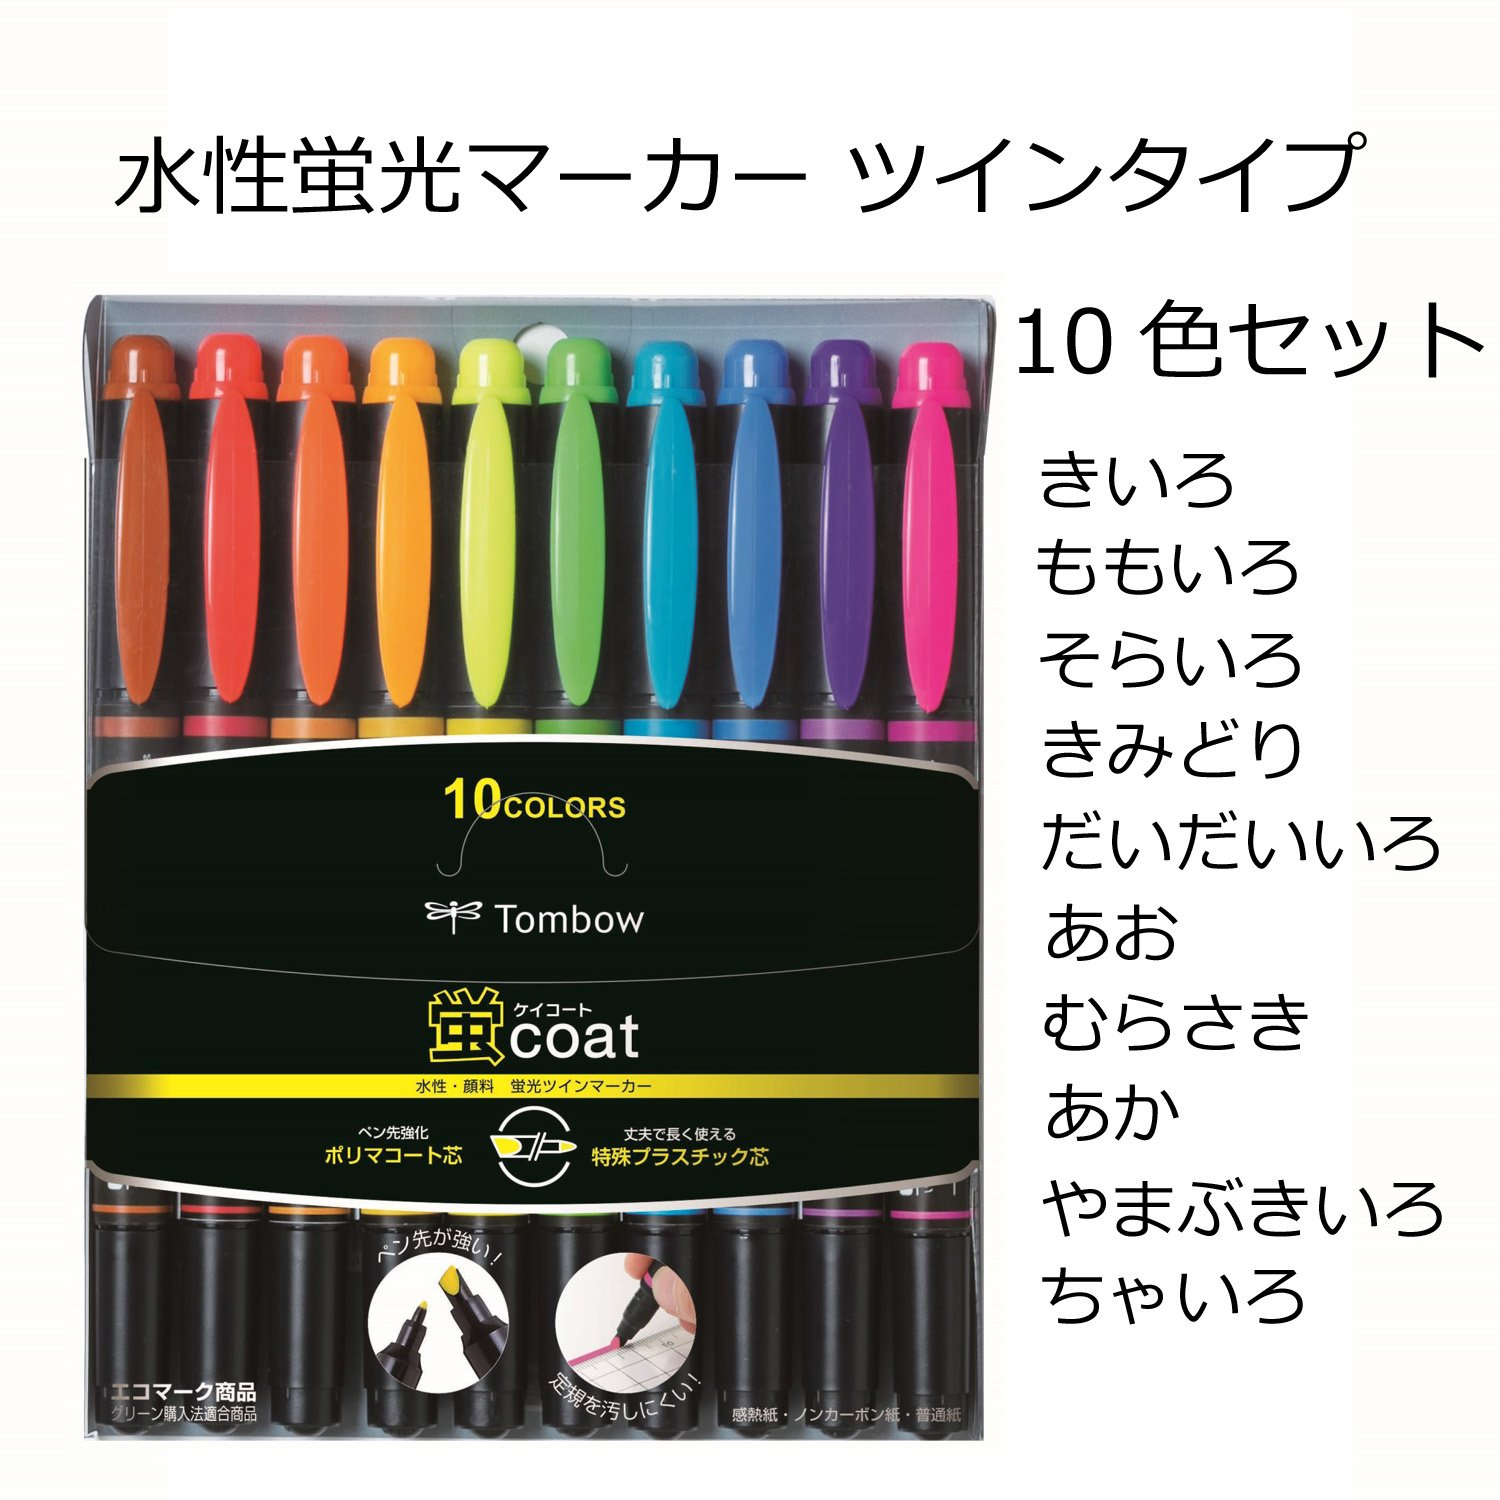 Tombow Kay Coat Double-Sided Fluorescent Highlighter Pen 10Color Set